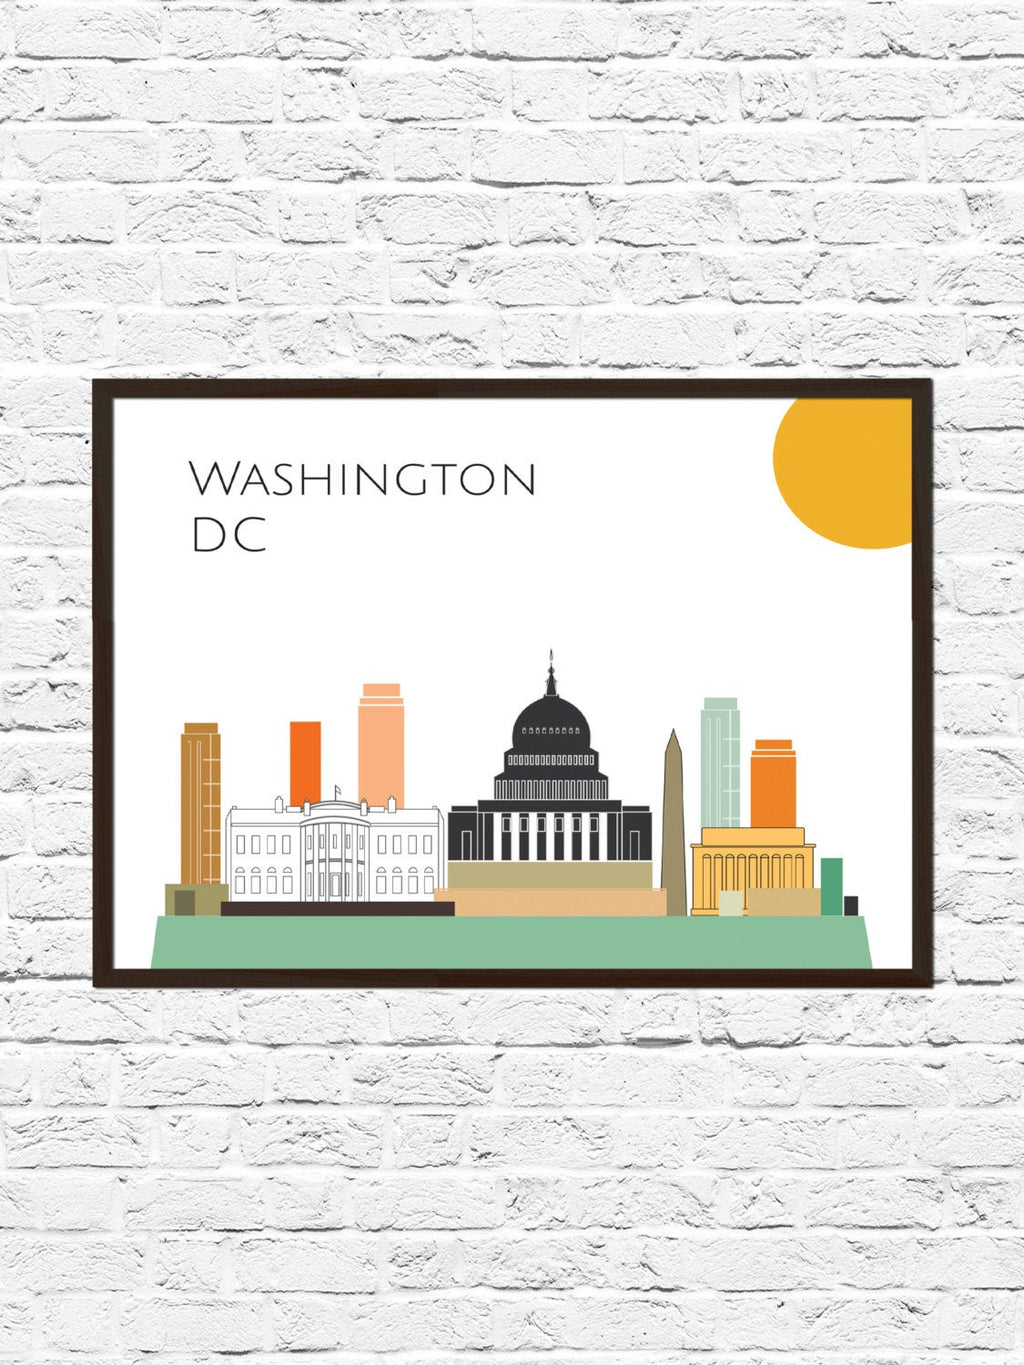 Washington DC Skyline - ParMar Media - 1